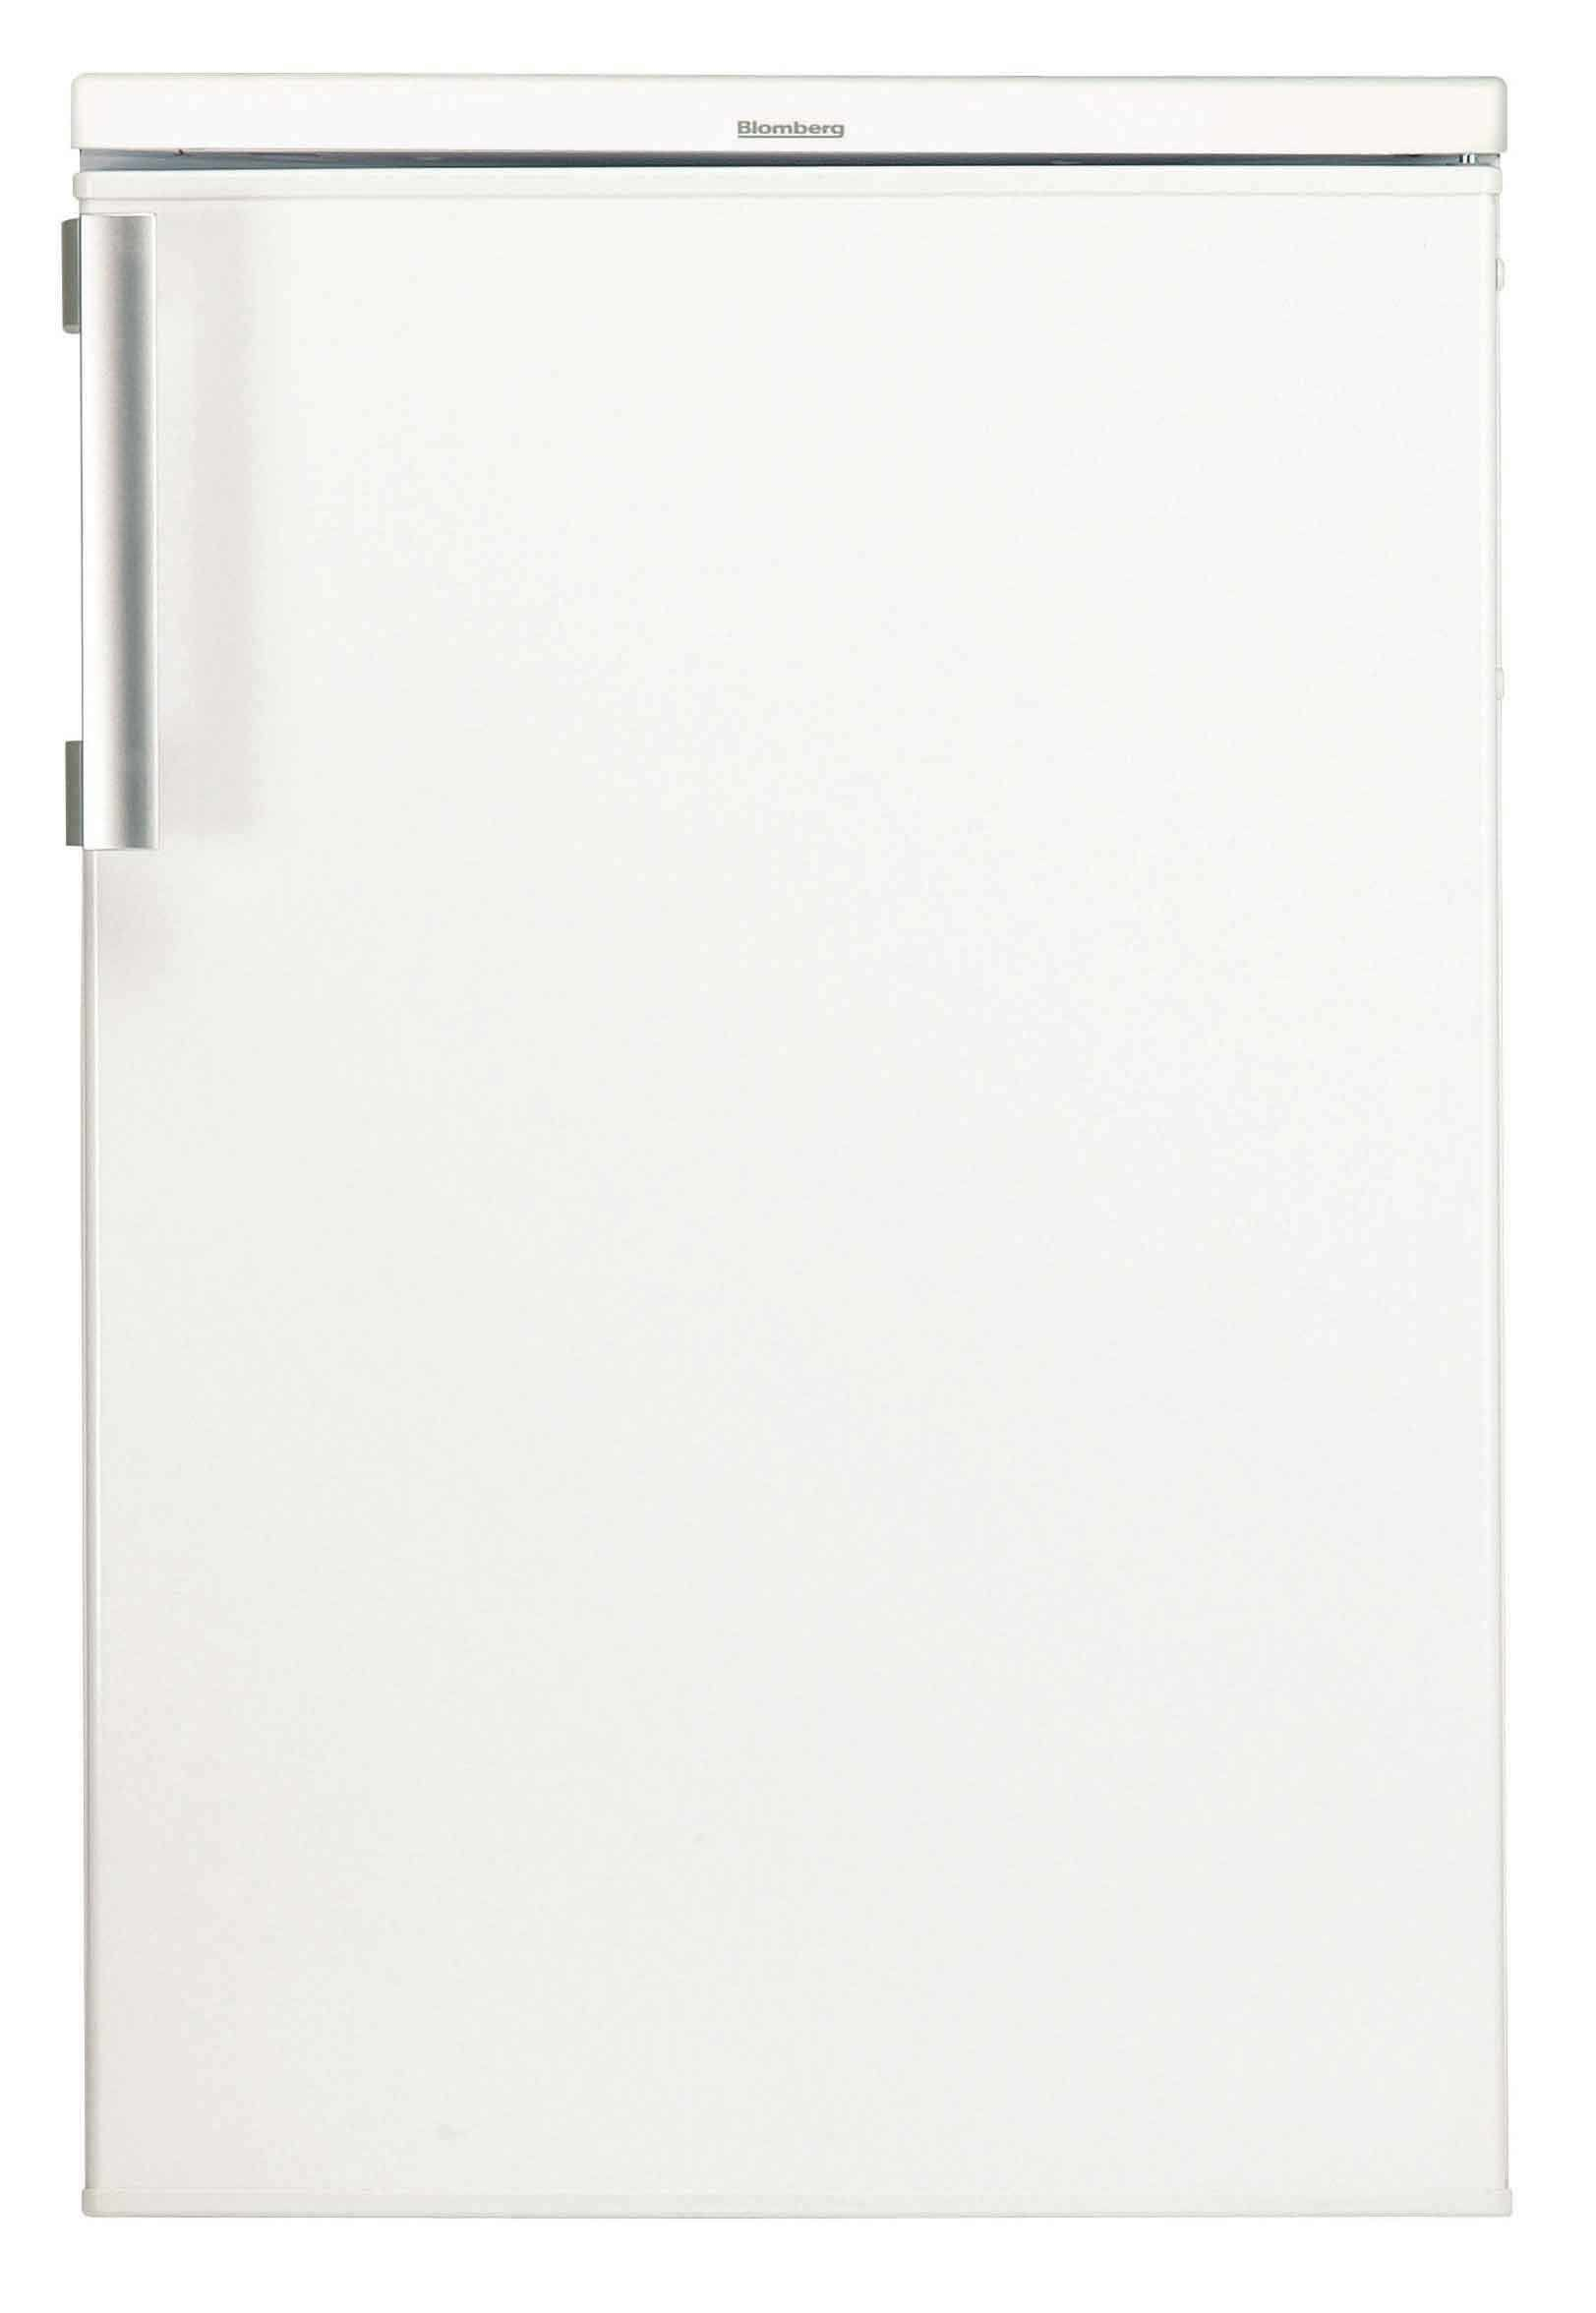 Blomberg TSM1541P 114 Litre Under Counter Fridge with Freezer Compartment